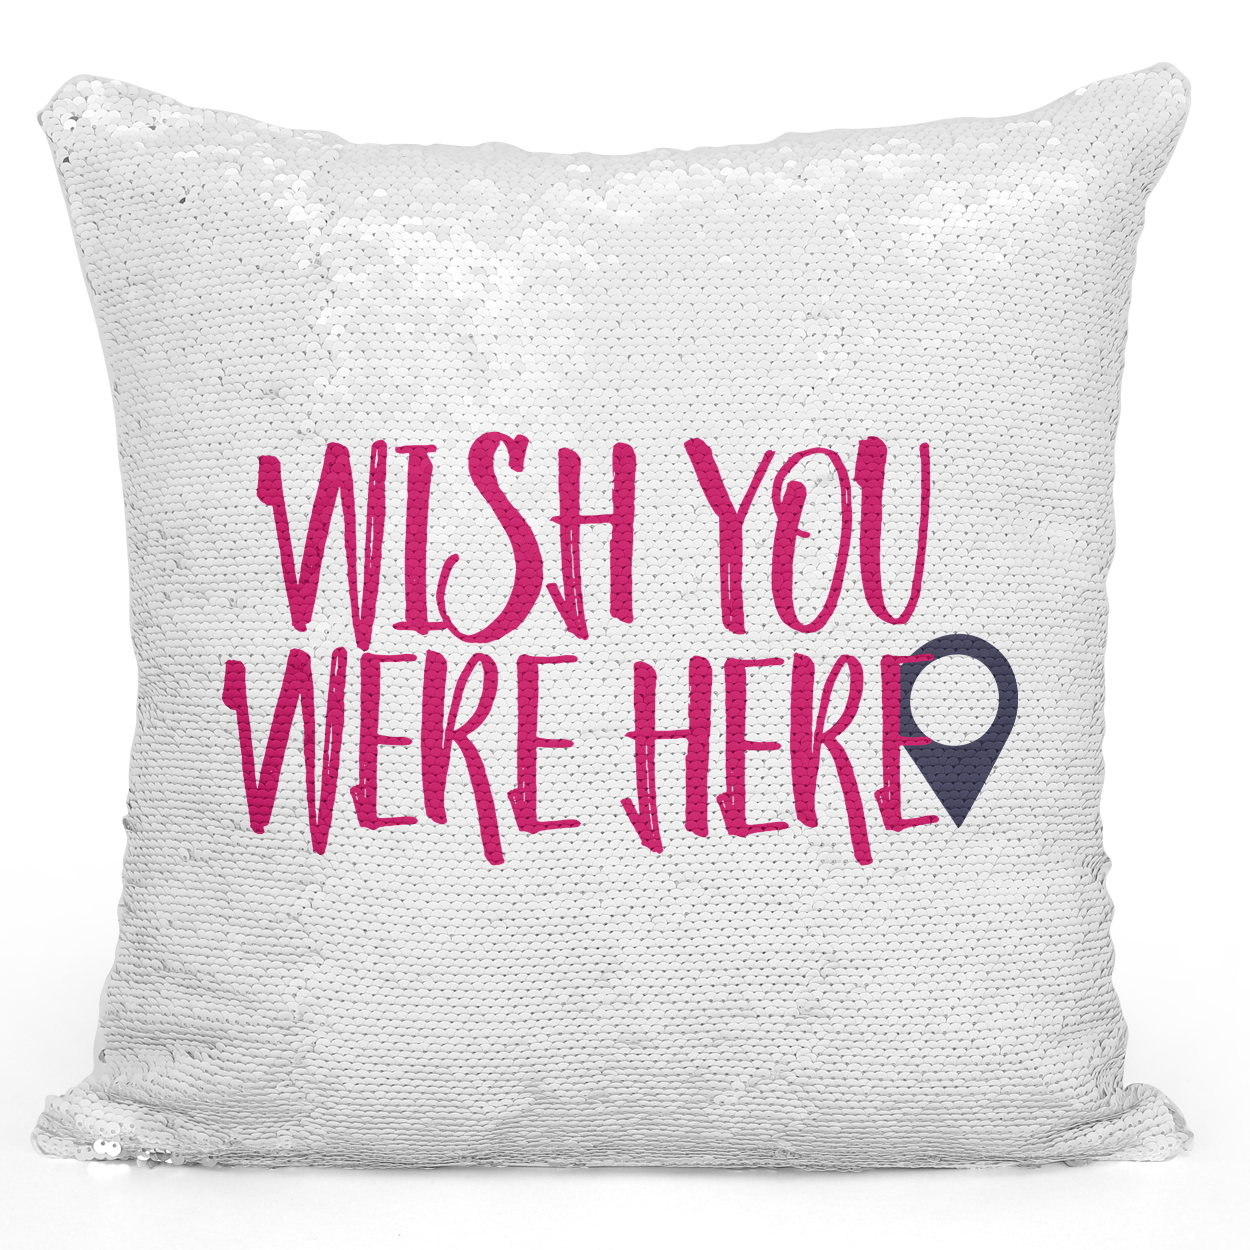 16x16 inch Sequin Throw Pillow Magic Flip Pillow Wise You Were Here Pin Couples Girl Friends Pillow Loud Universe